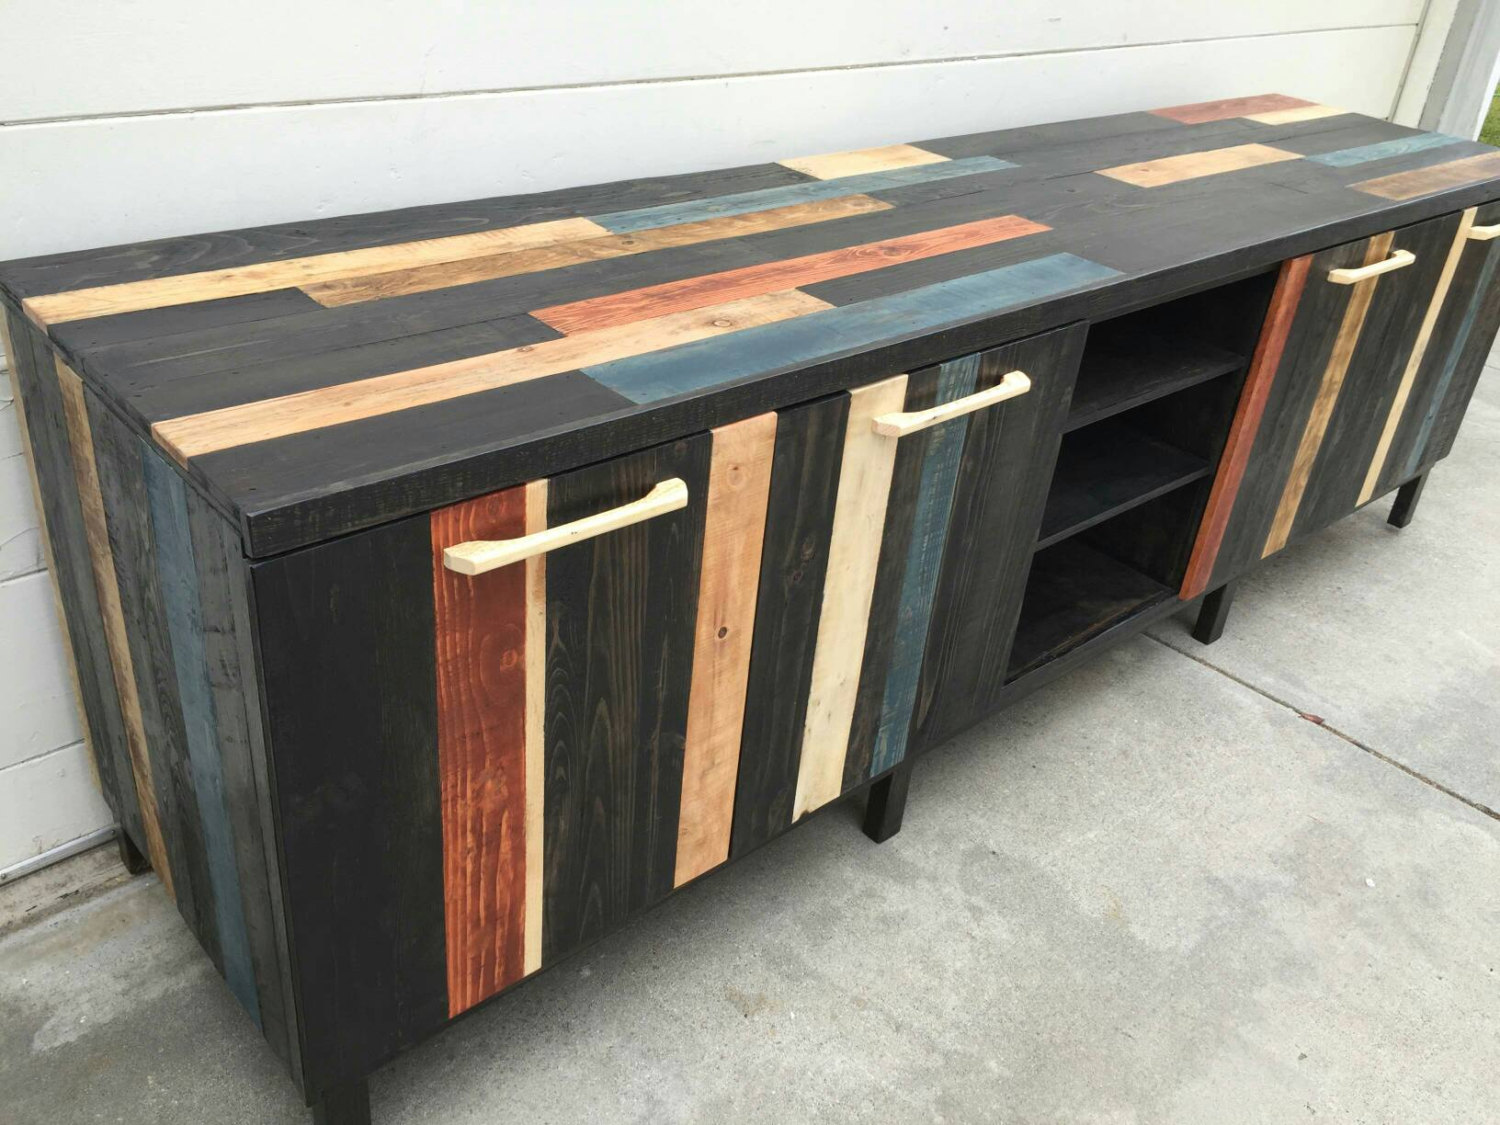 Wooden Pallet Furniture